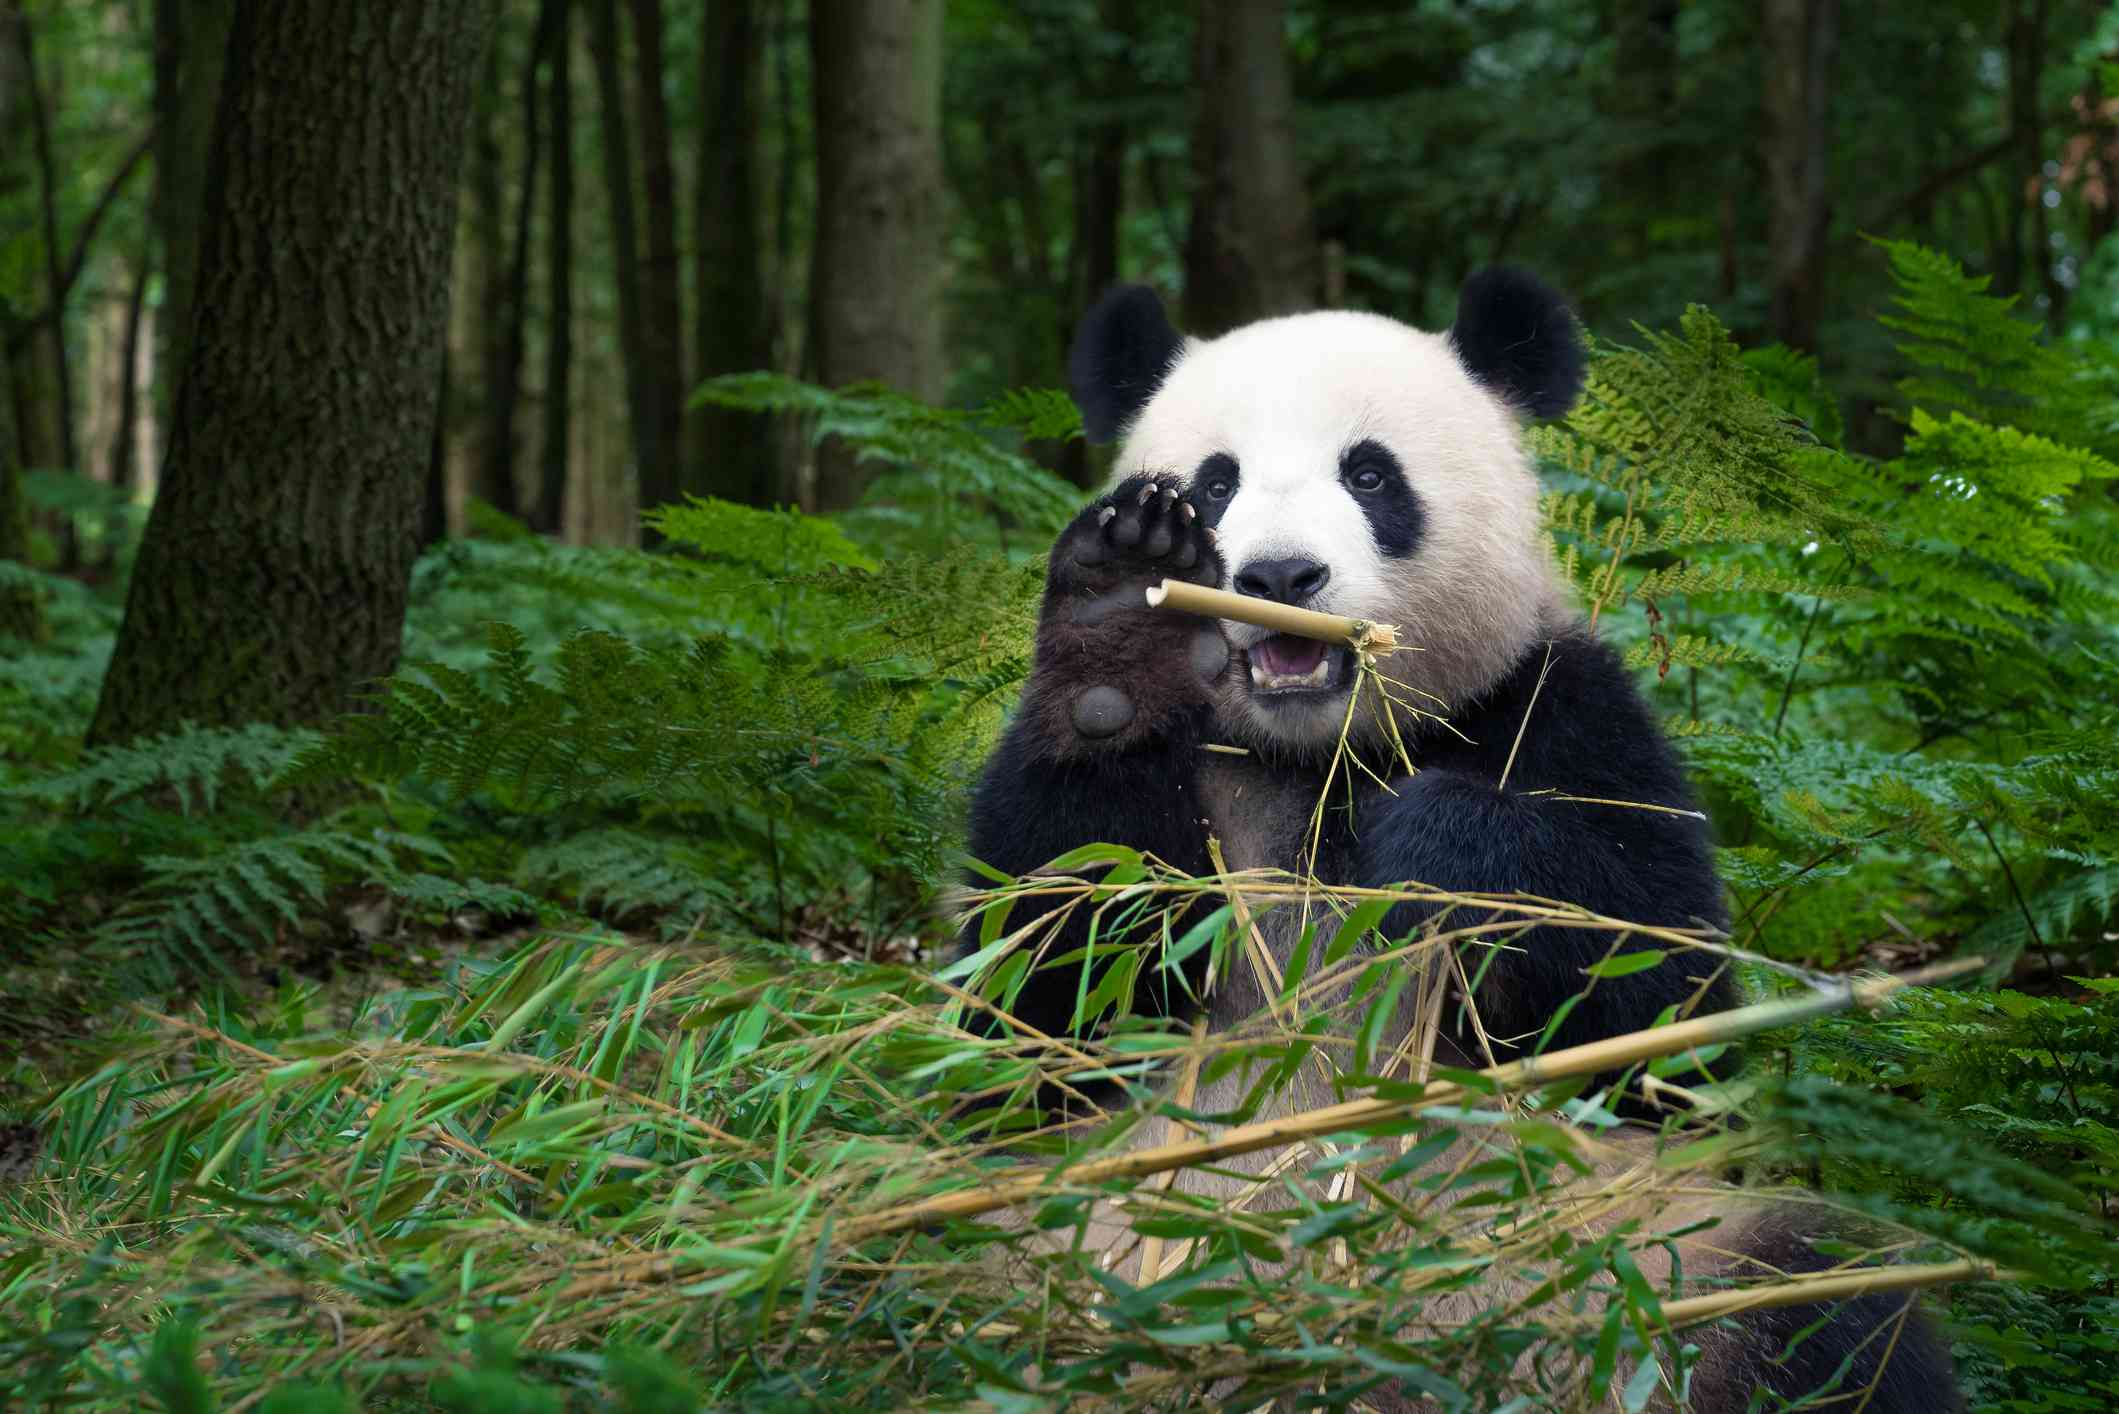 panda sits in forest holding bamboo with one paw open to face camera